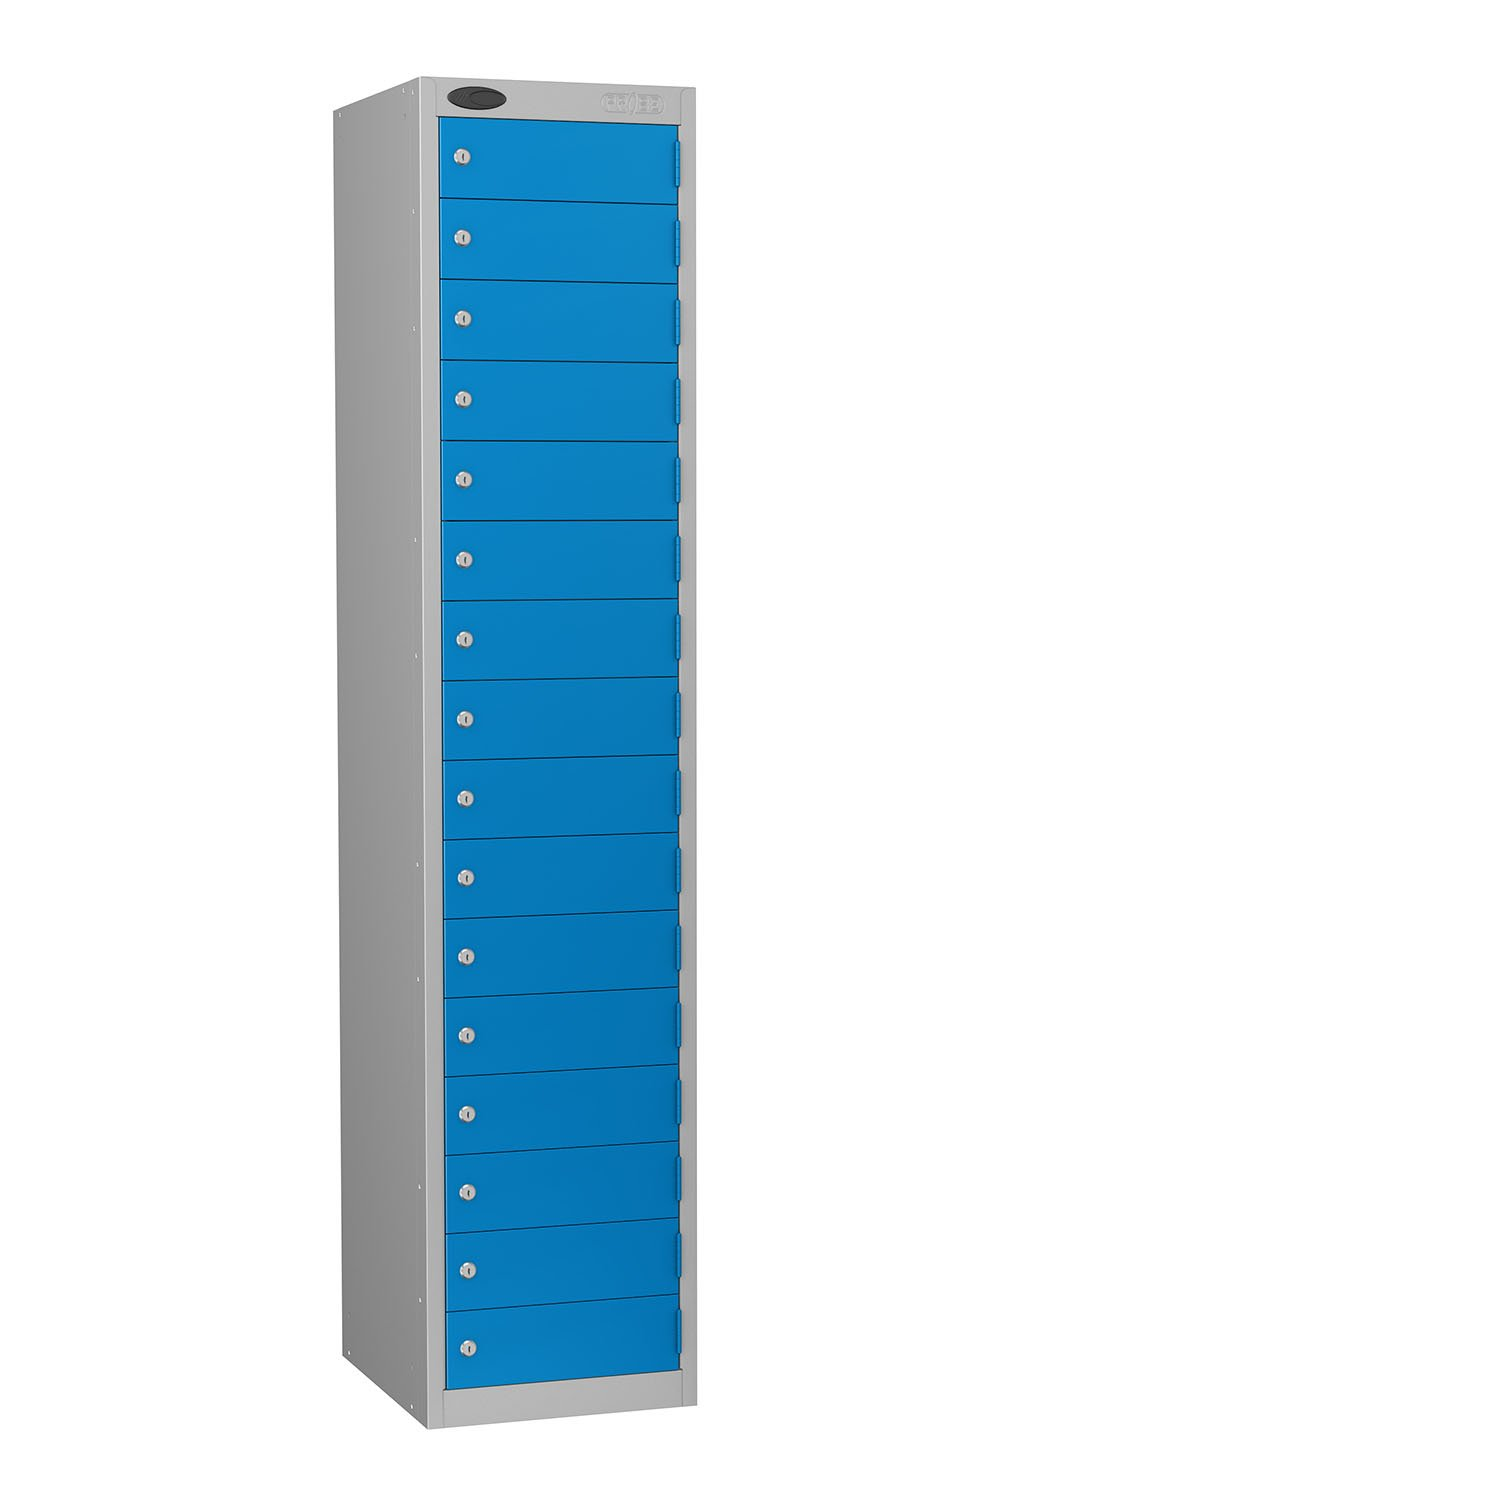 Probe 16 doors small compartments lockers in blue colour